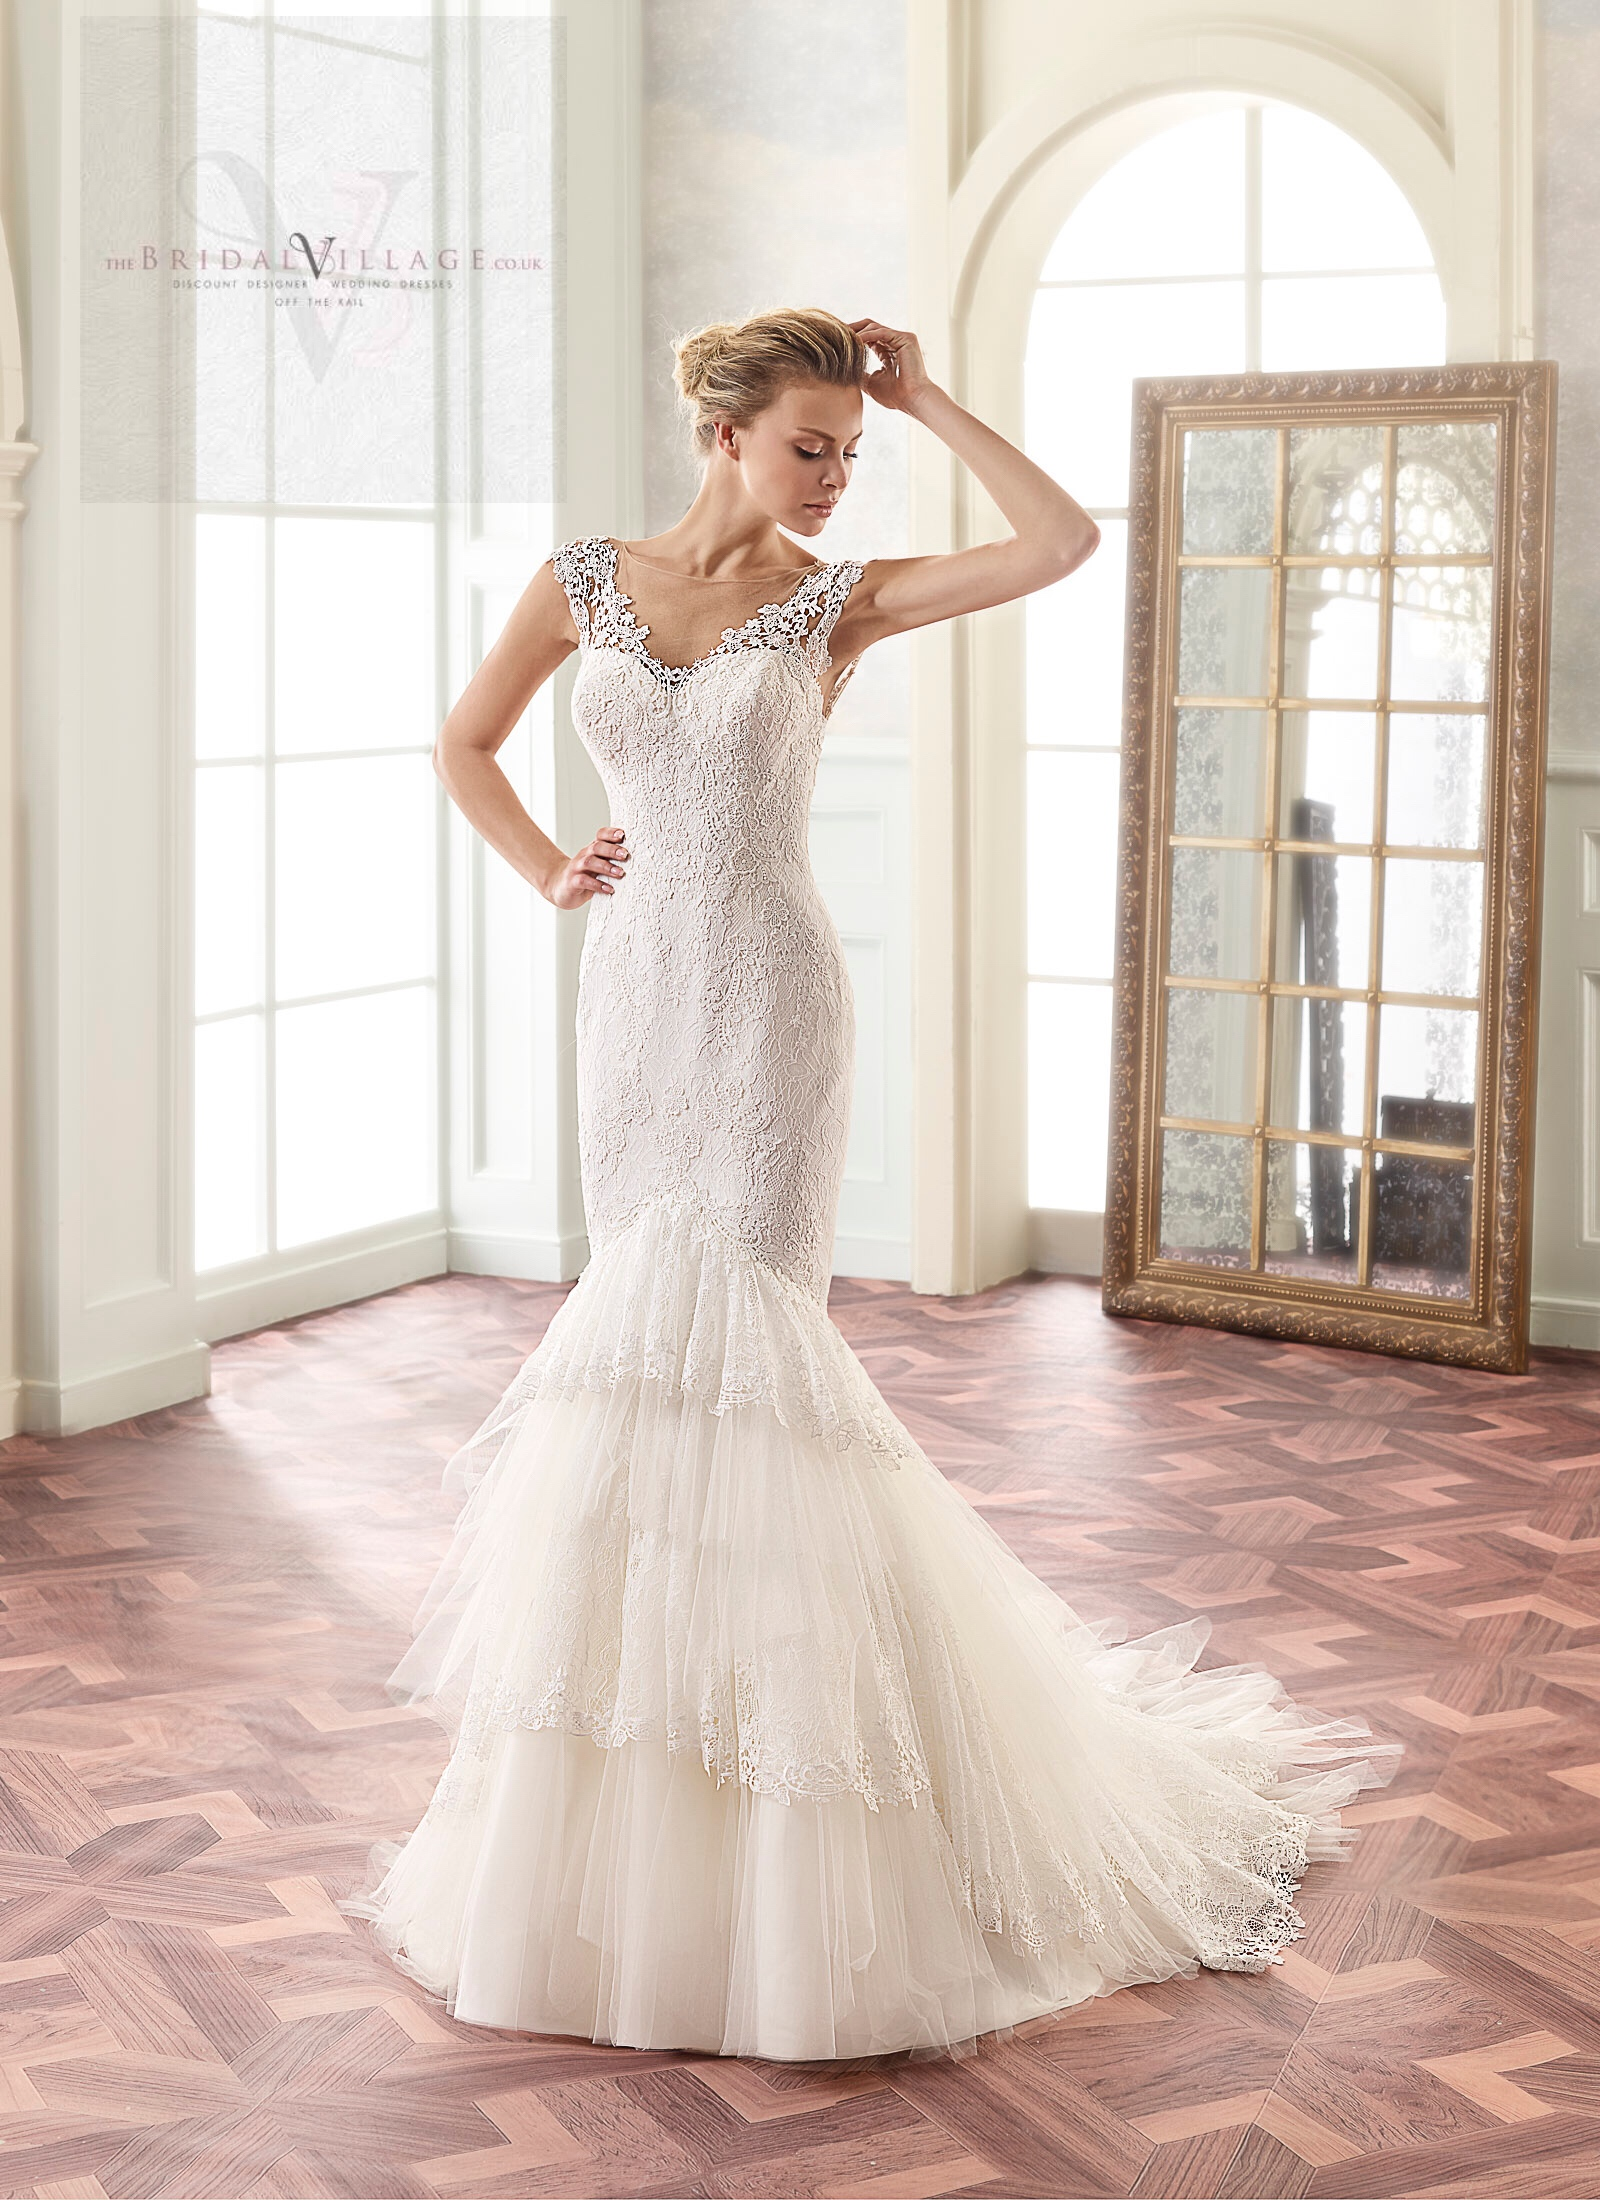 Bridal Boutiques | The Bridal Village UK | Wedding Dresses UK